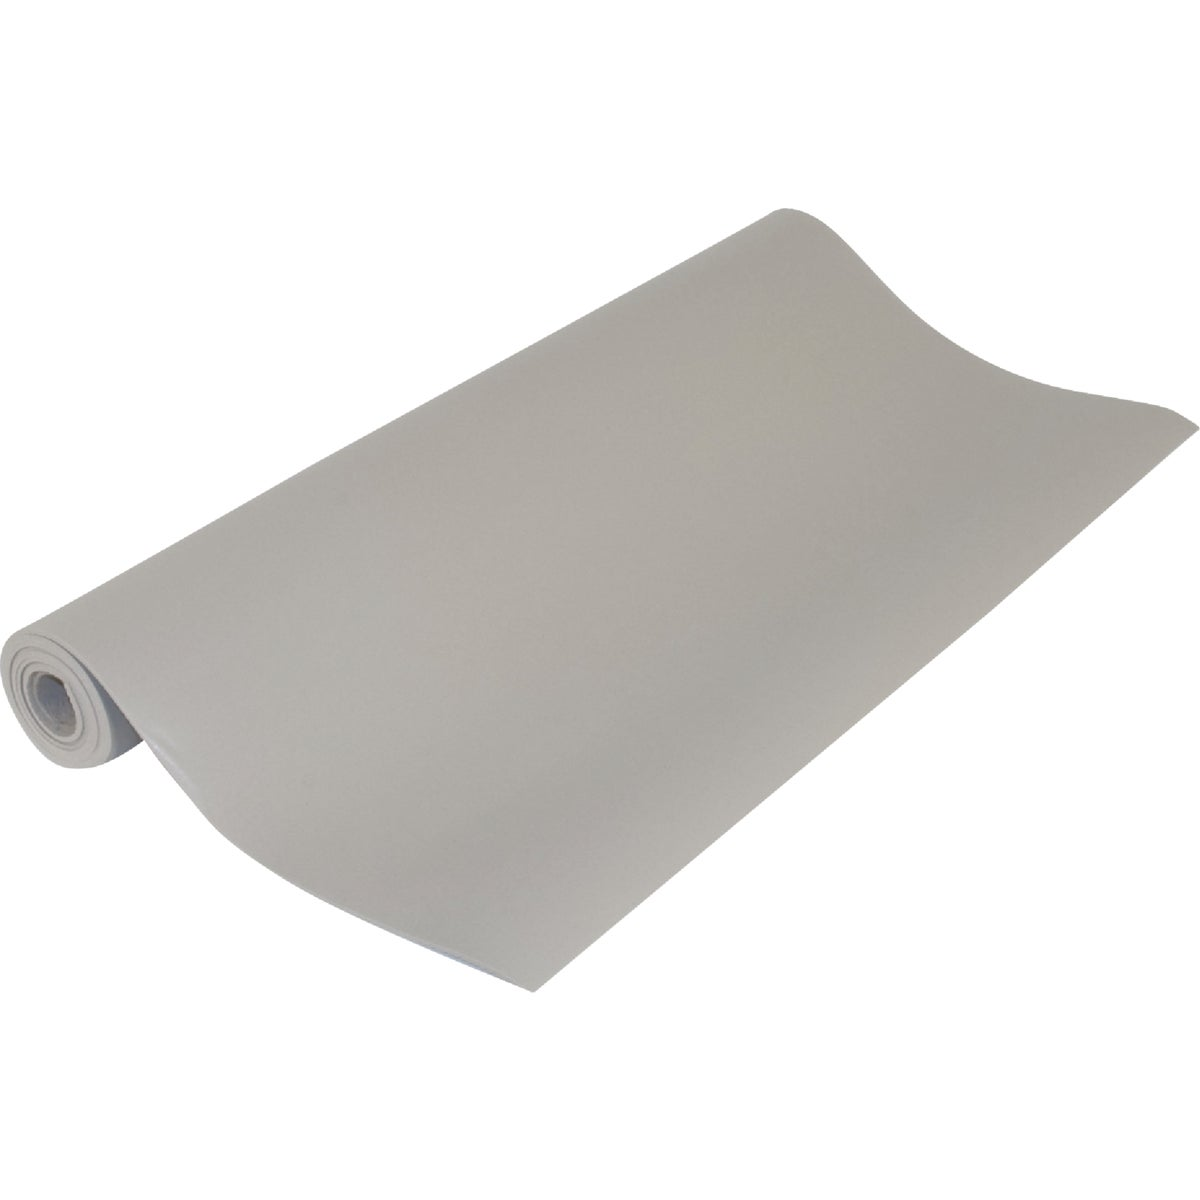 TAUPE SOLID GRIP LINER - 04F-C6U59-01 by Kittrich Corp